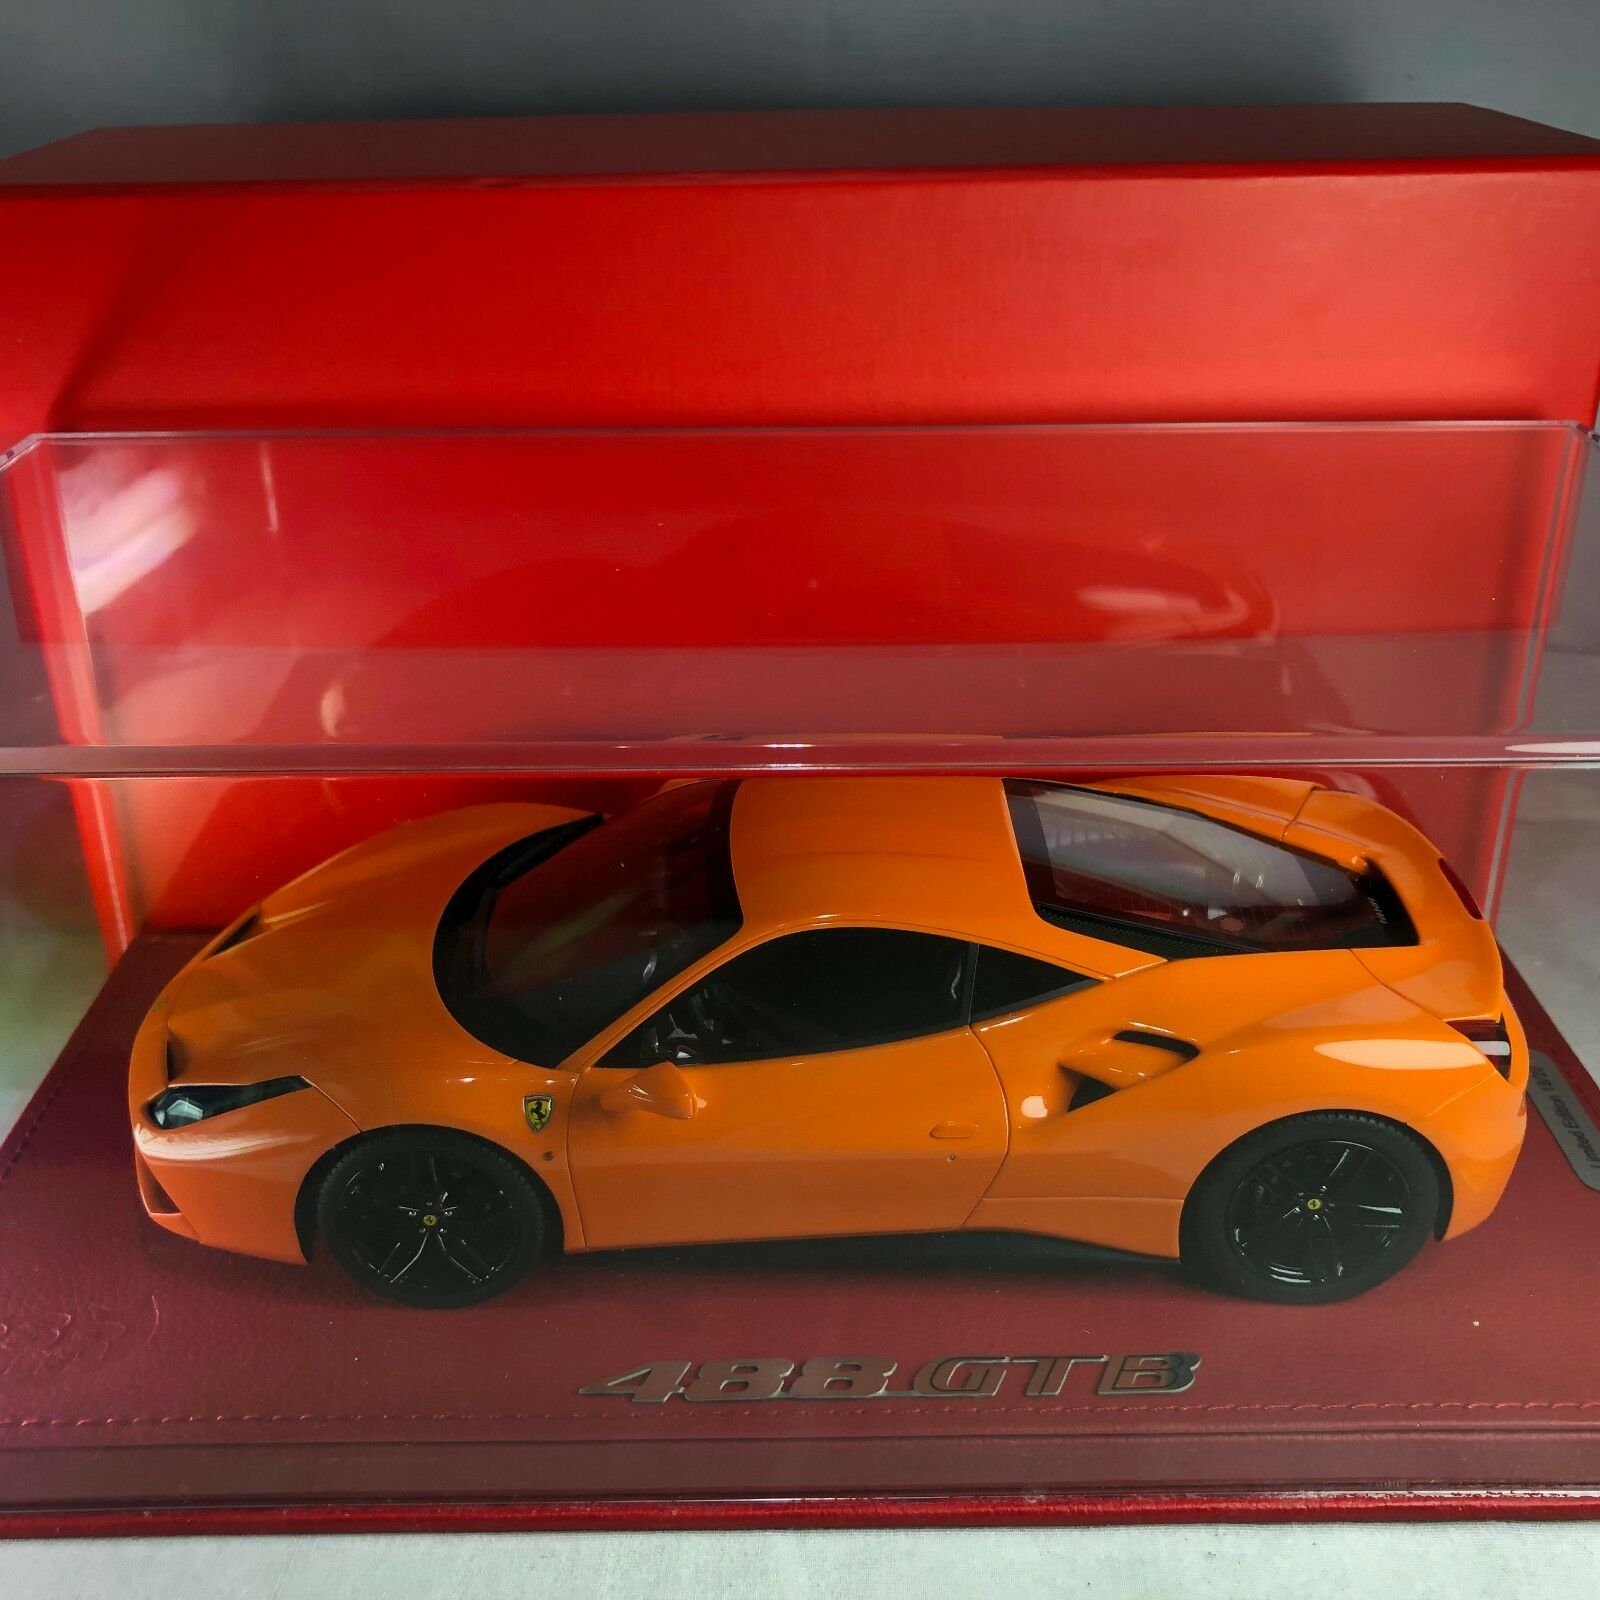 1/18 BBR Model  P1816ORACH Ferrari 488 GTB Honda arancia Ltd 20 pcs